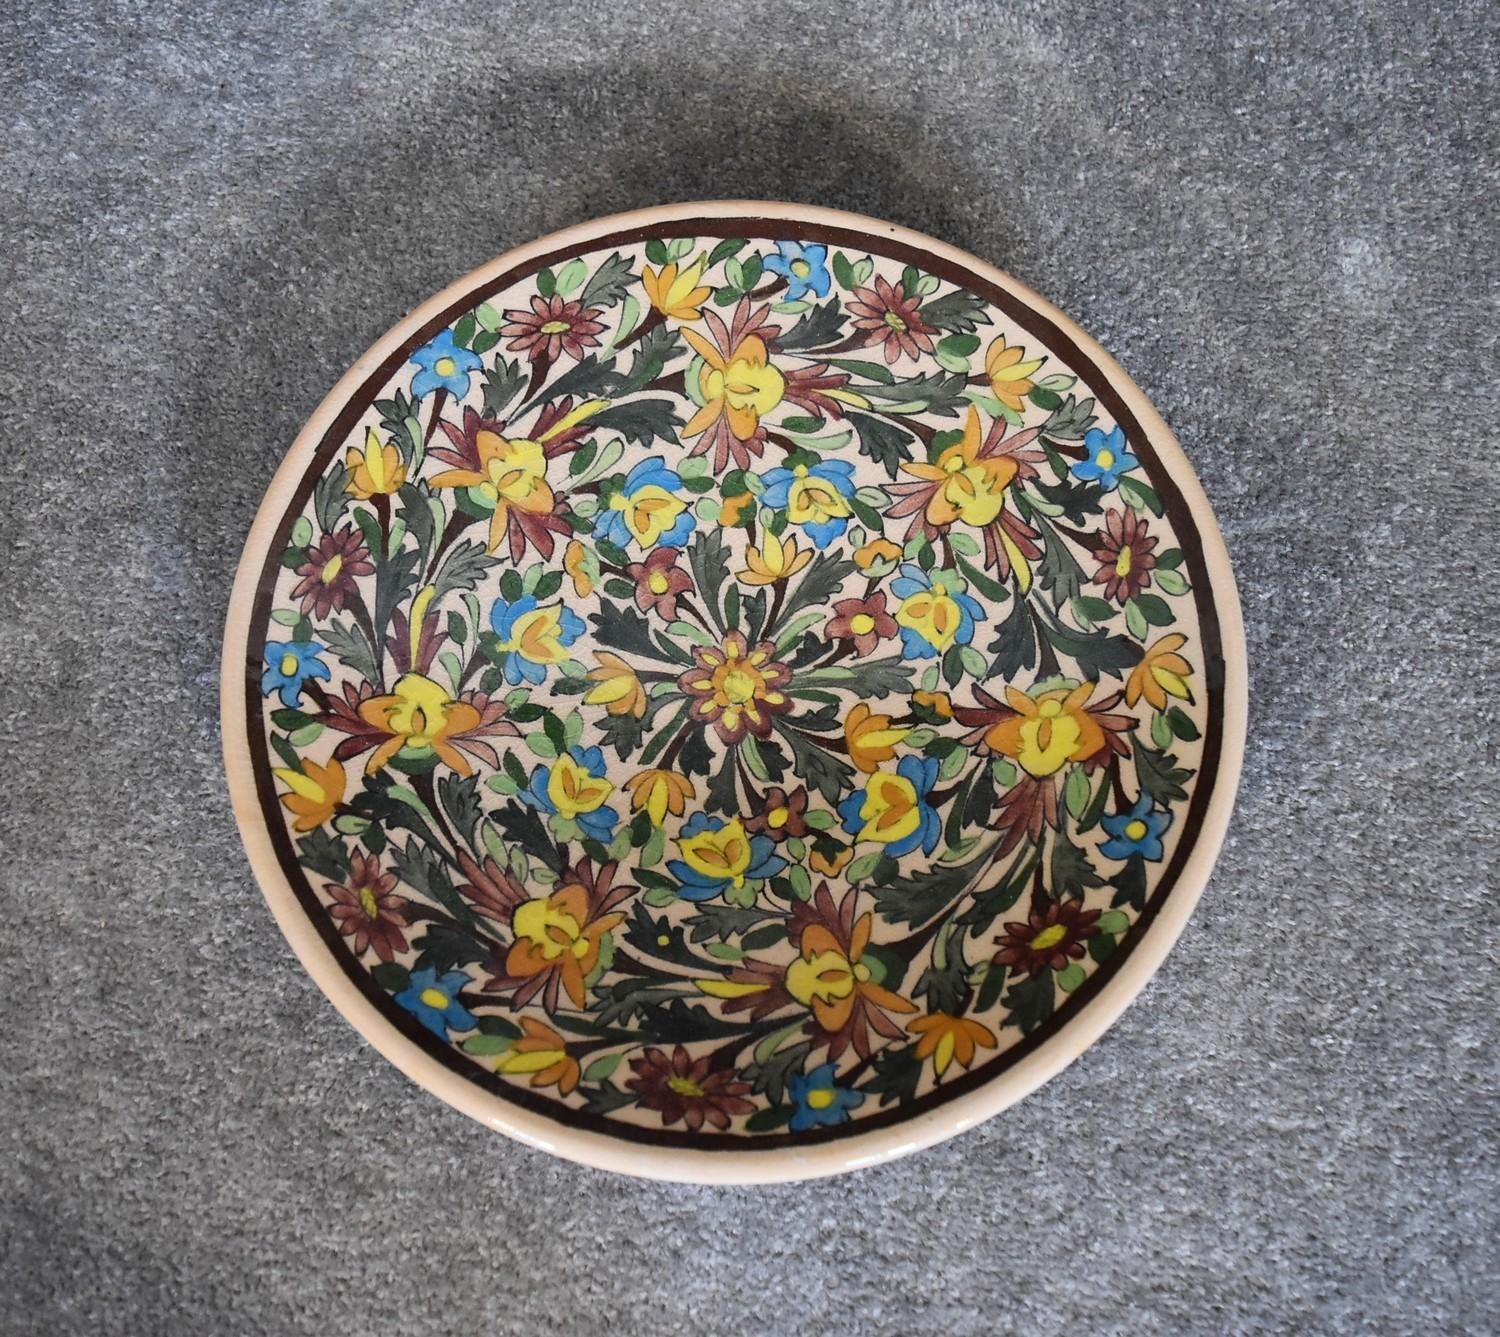 Lot 24 - A large ceramic Persian shallow bowl with allover floral pattern. Dia.36cm